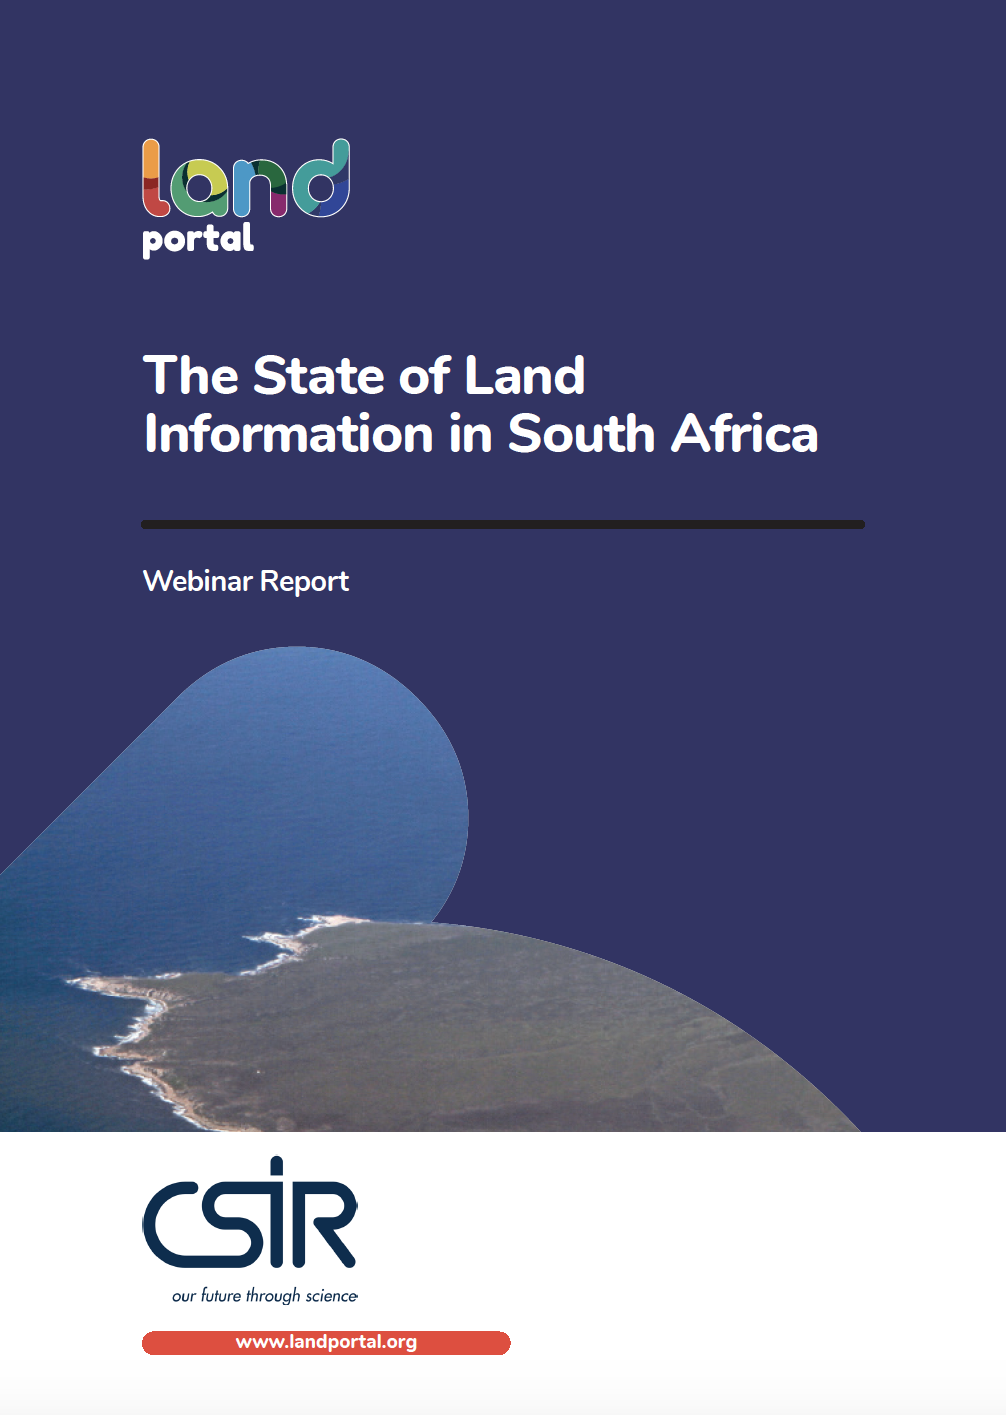 The State of Land Information in South Africa